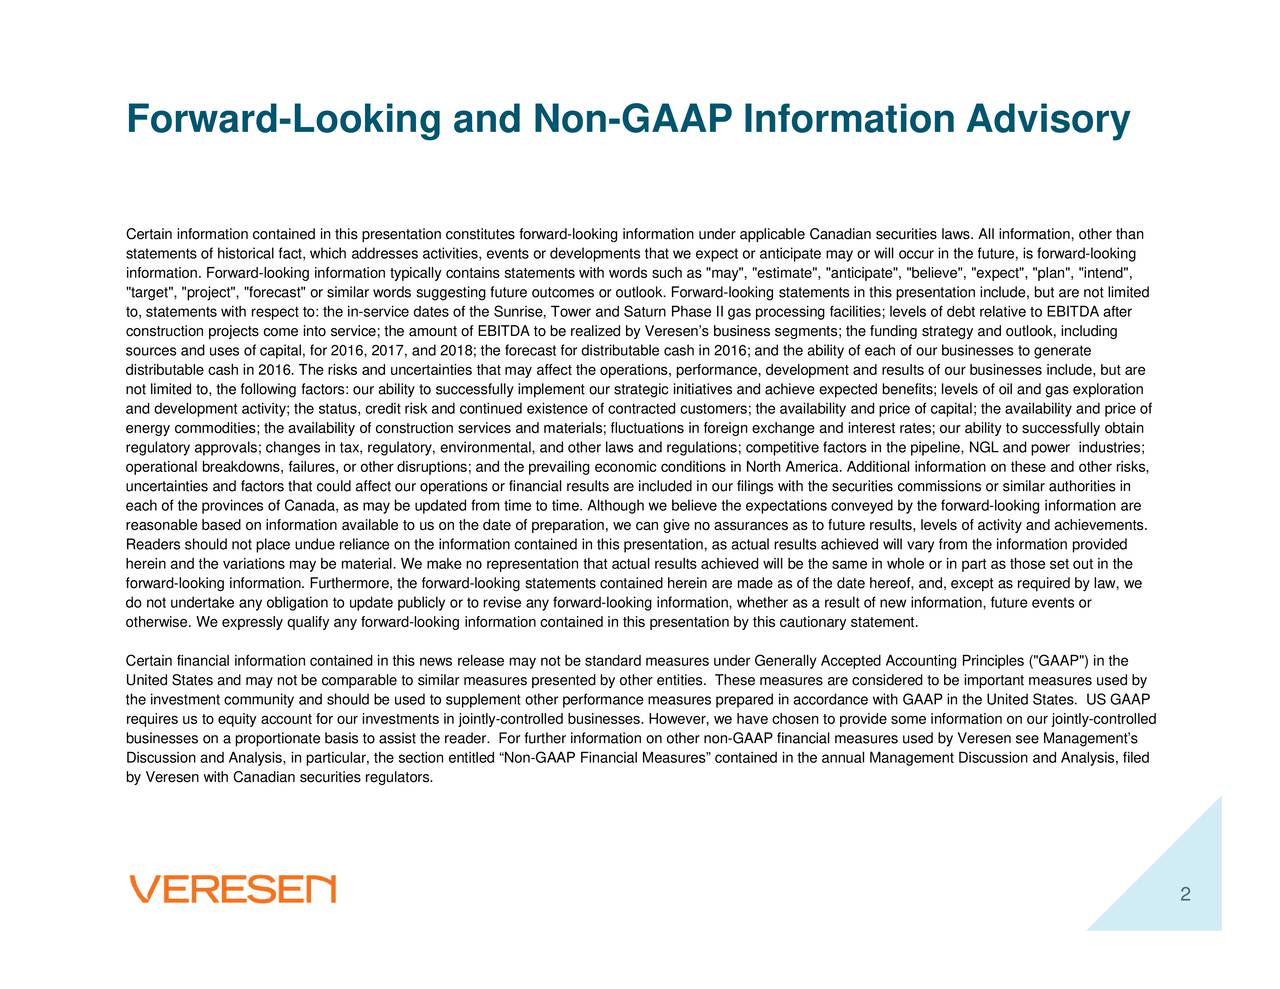 """are not limited ability and price of il and gas exploration ited States. US GAAP ard-looking information areples (""""GAAiscussion and Analysis, filed gy and outlook, including Veresen see Managements laws. All information, other thans includeels of activity and achievements. the on our jointly-controlled r in entation include, but s; our ability to successfully obtainure events or s of dour befits; levels of oateer commissions or similar authorities in s; the funding strate the date hereof, and, ures are considered to be imment D statements in this pres as to future results, lev mpetitive factors in the pip enerally Accepted Accounting Pr he availability and price of by this cautionarGAAP financial measures used by as actual results achieved will vary as """"may"""", """"estimate"""", """"anticipate"""", """"bel ein are made as of ver, we have chosen to provide some inf we expectPhasecash in 2016; and the ability of each of ures contained in resens busineions in fclwe believe the expectations conveyed by the forw ons, performance, development and results of e measures prepared in accordance with GAAP in the Un rategic initiatives and achieve expected beother entities. These meas outlook. Forward-lcontracted customers; tactual results achieved will be the same in whole or economic conditions in Nort ation, we can give no assurances forward-looking information, whether as a result of new inf and other laws and regulations; cod in this presentation statements contained hefurther information on other non- formation contained in this presentation, lly contains sttainties that may affect the operati prepar milar measures presented byormanc make no representation that ce dates of the Sunrise, Tower and Saturnhe prevailingtuat ments in jointly-controlled businesses. Howe sses activitthe amount of EBITDA to be realized by Veinancial results arehe section entitled Non-GAAP Financial Meas esentation constitutes ability to successfully implement our stable Canadian securities tax, regulatory, environ"""